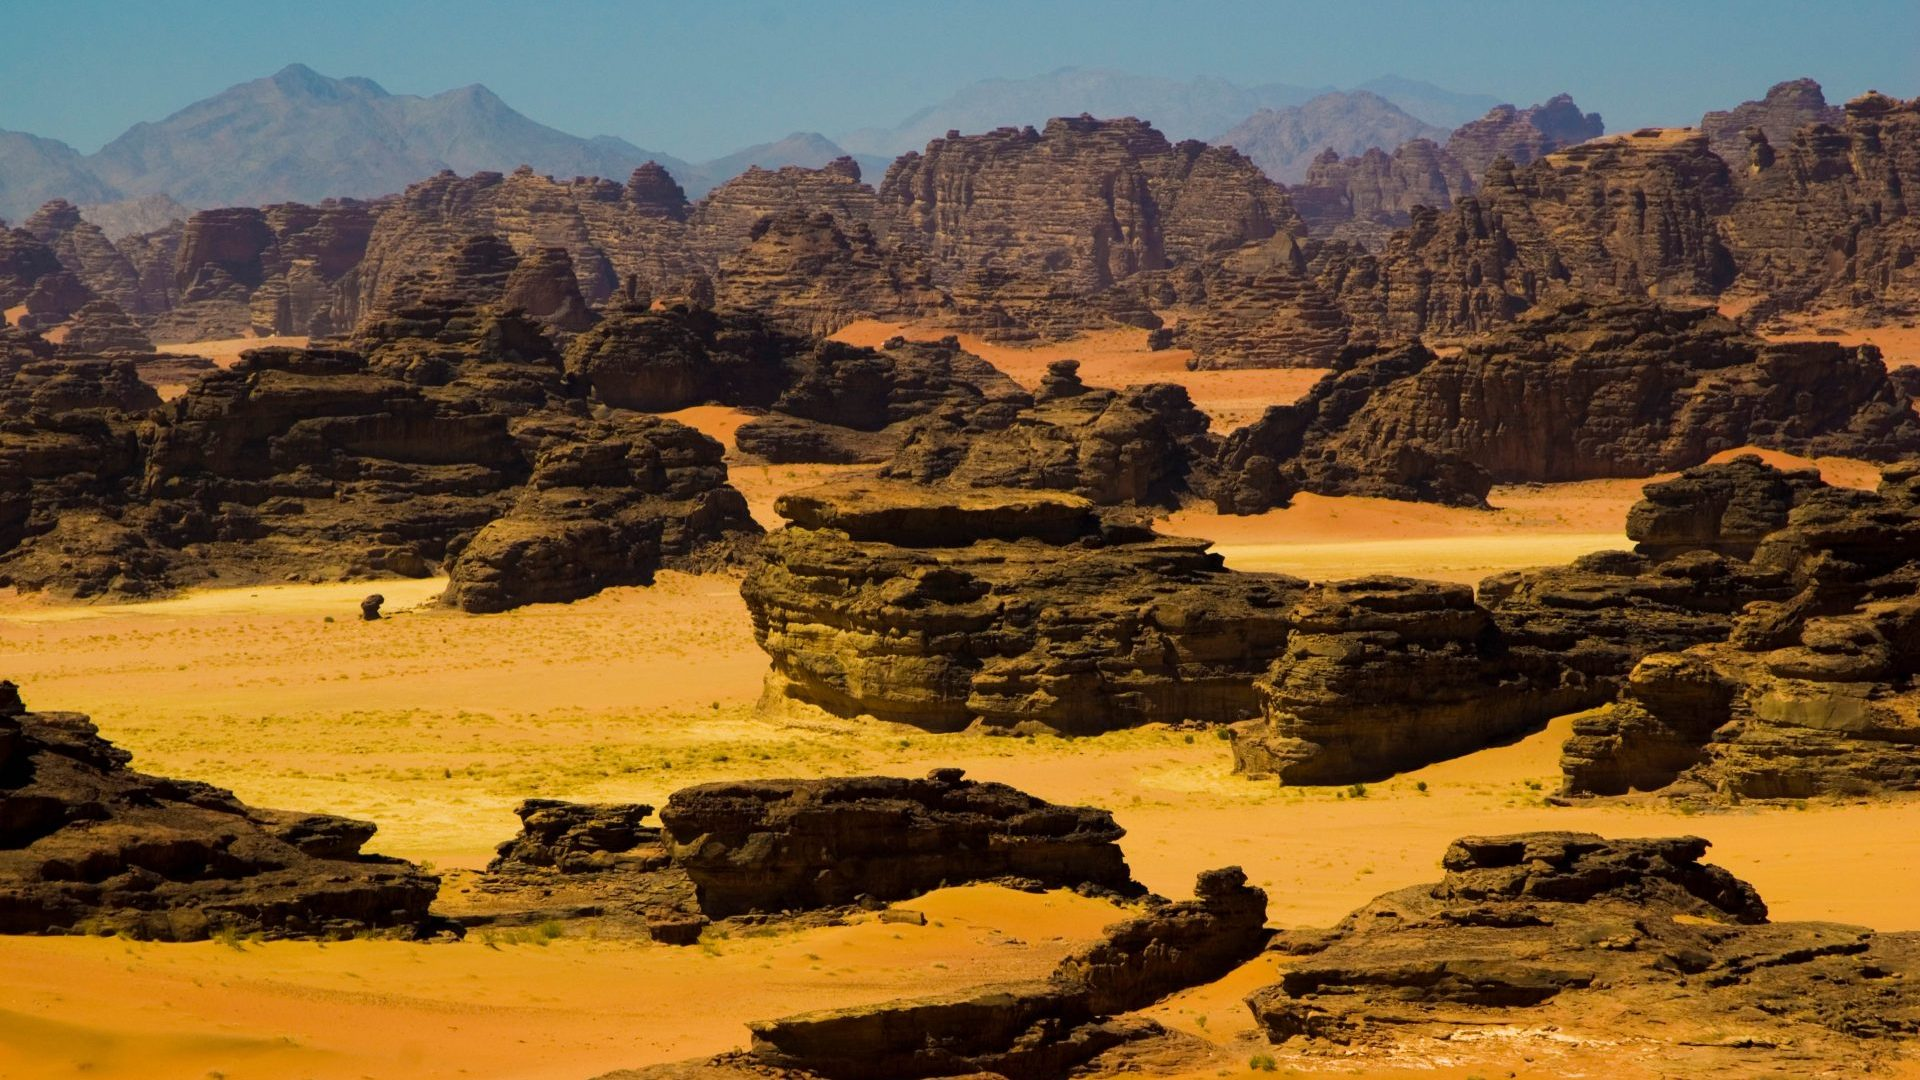 Hisma desert north of Tabuk, Saudi Arabia